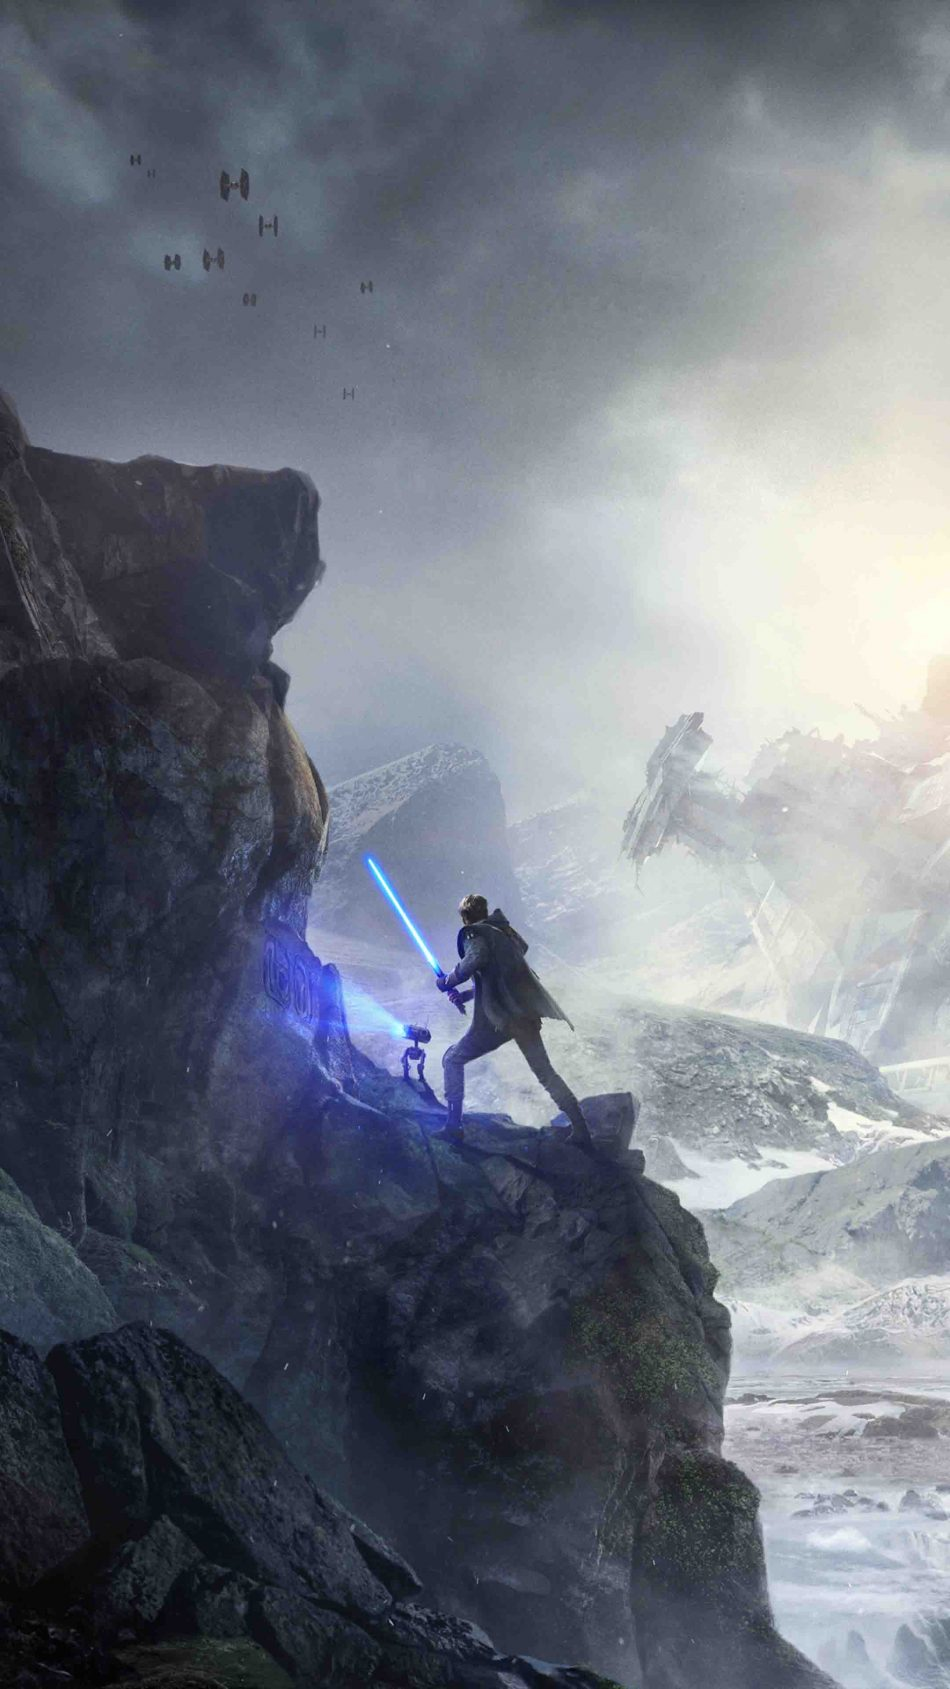 Star Wars Jedi Fallen Order PS4 Game 4K Ultra HD Mobile Wallpaper